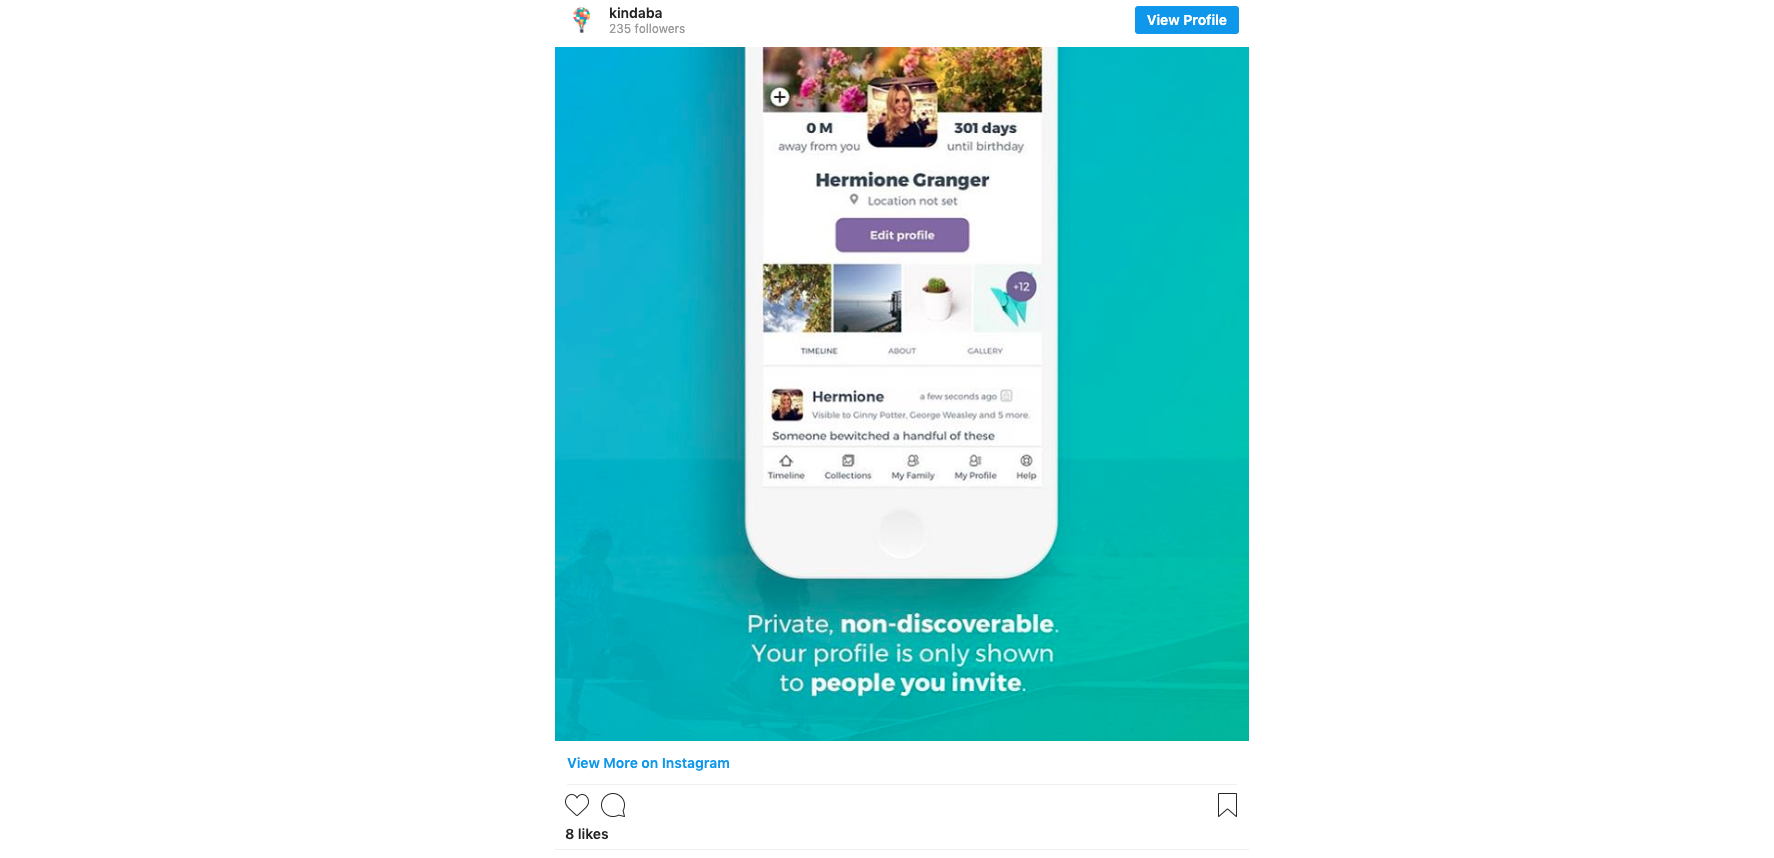 Friendship by design: the next big features in social networks